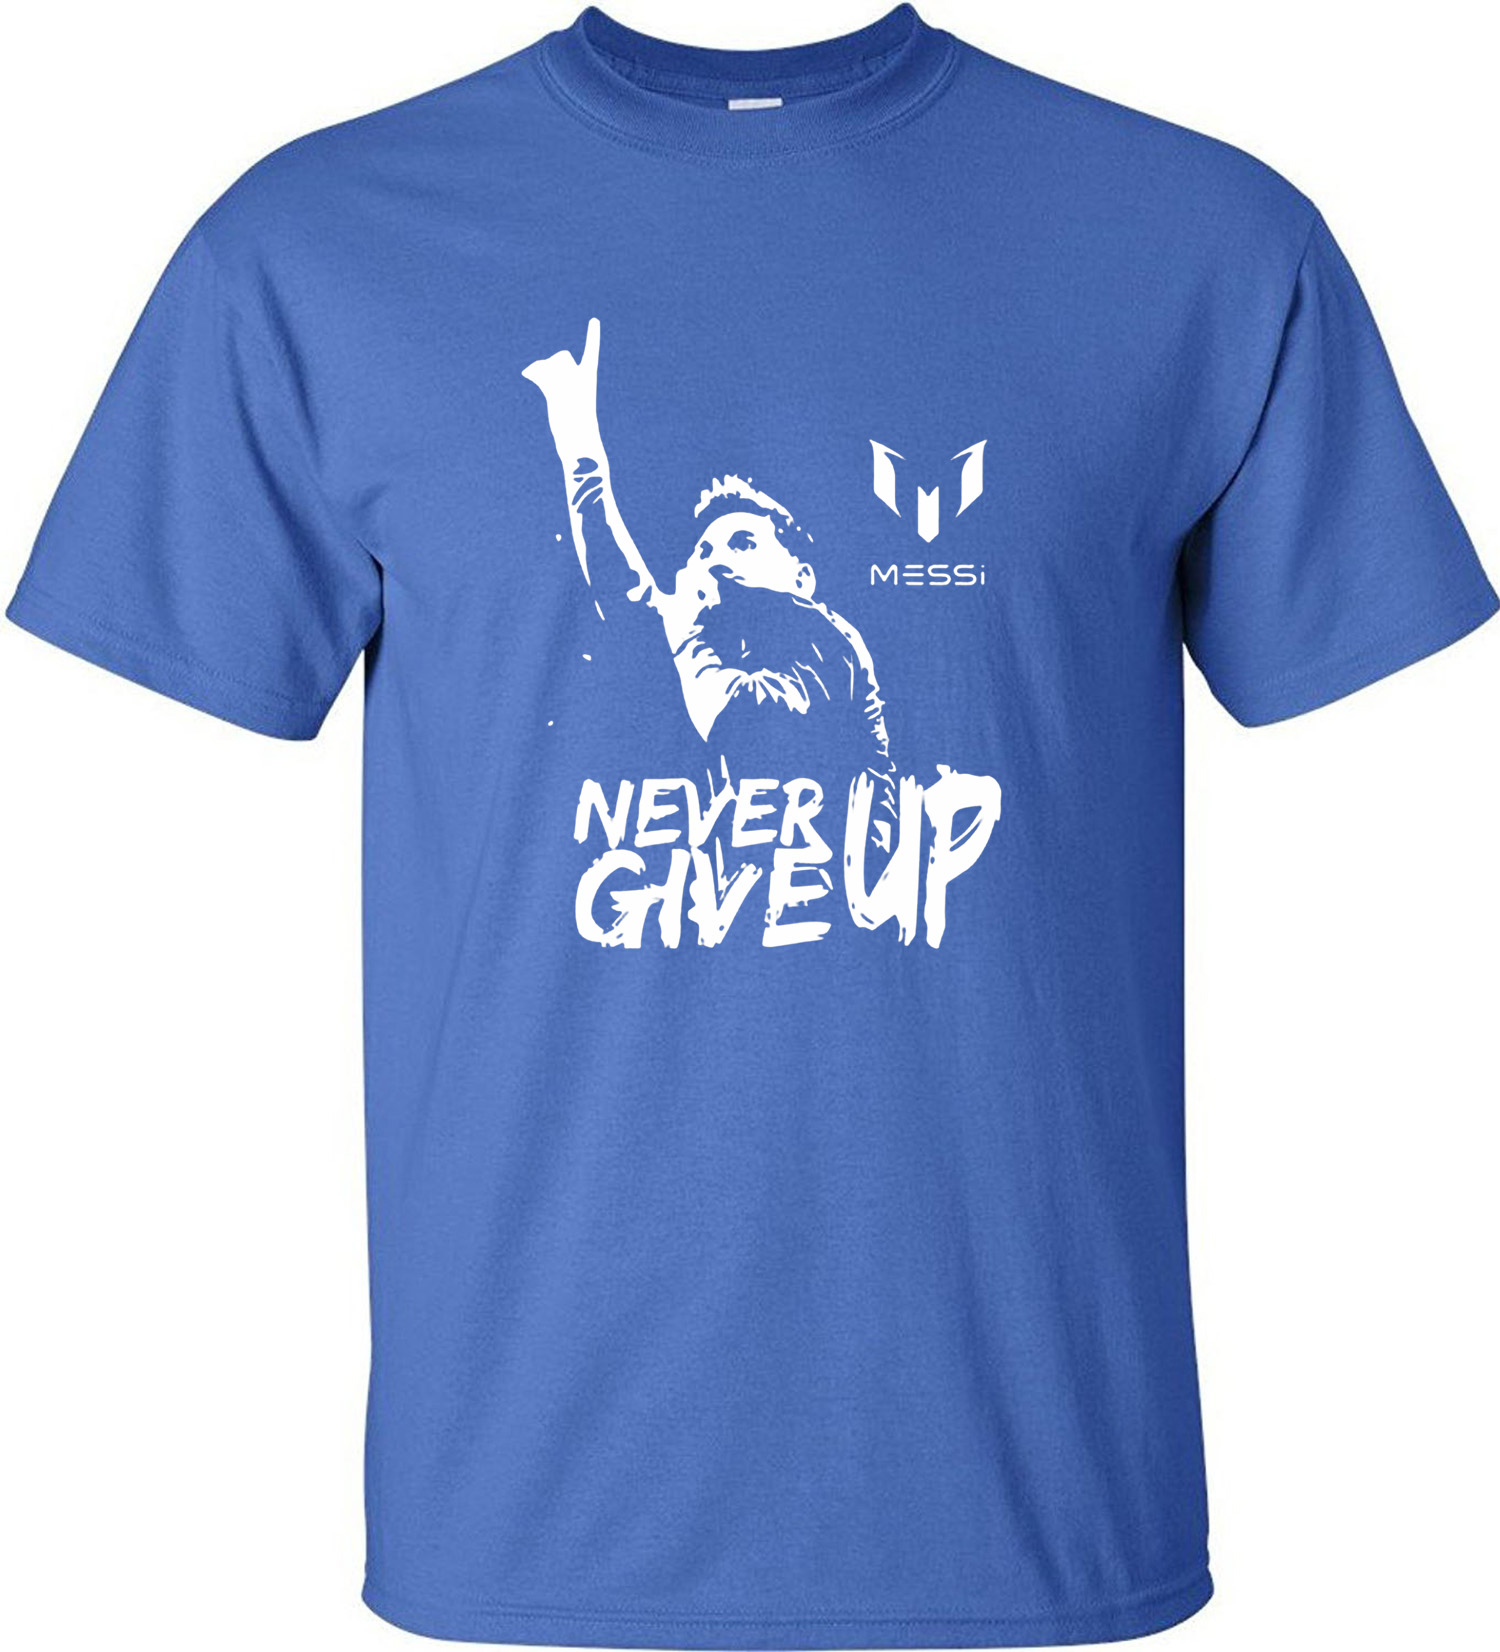 38ced94afe9 Leo Messi NEVER GIVE UP Tshirt FC BARCELONA T shirt MESSI Cotton Jersey  Fans for Shirt-in T-Shirts from Men s Clothing on Aliexpress.com